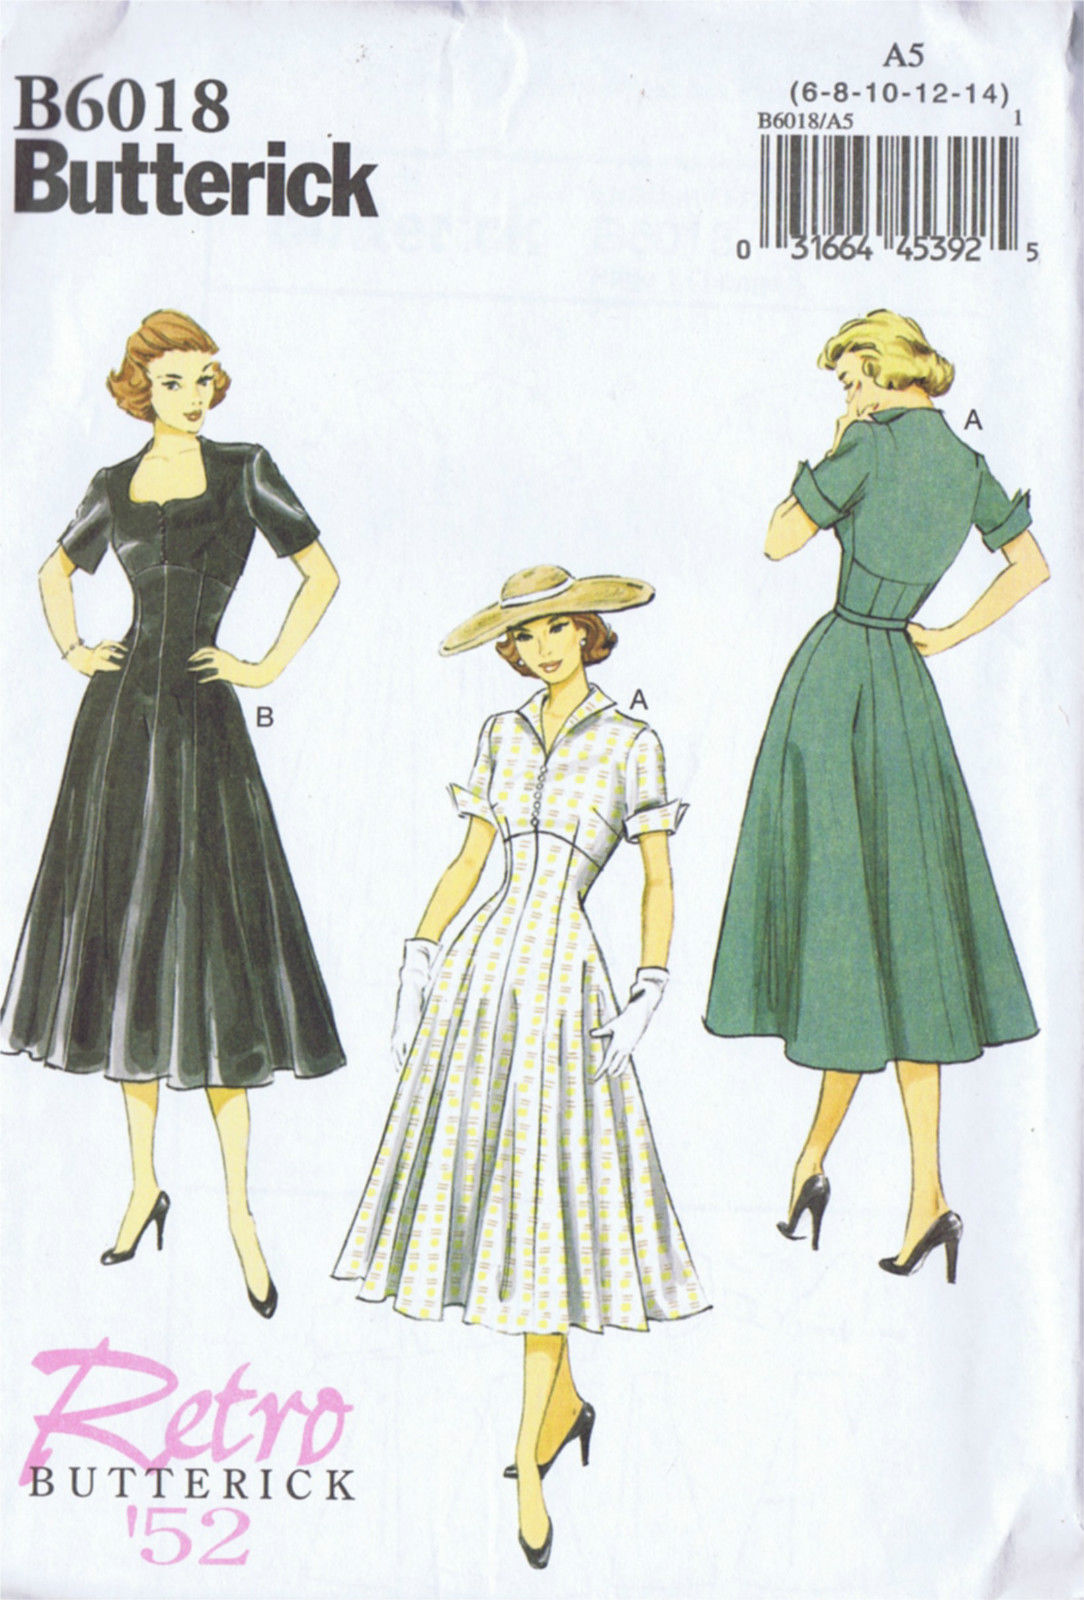 6018 Butterick Sewing Pattern One Piece Dress Vintage Reproduction